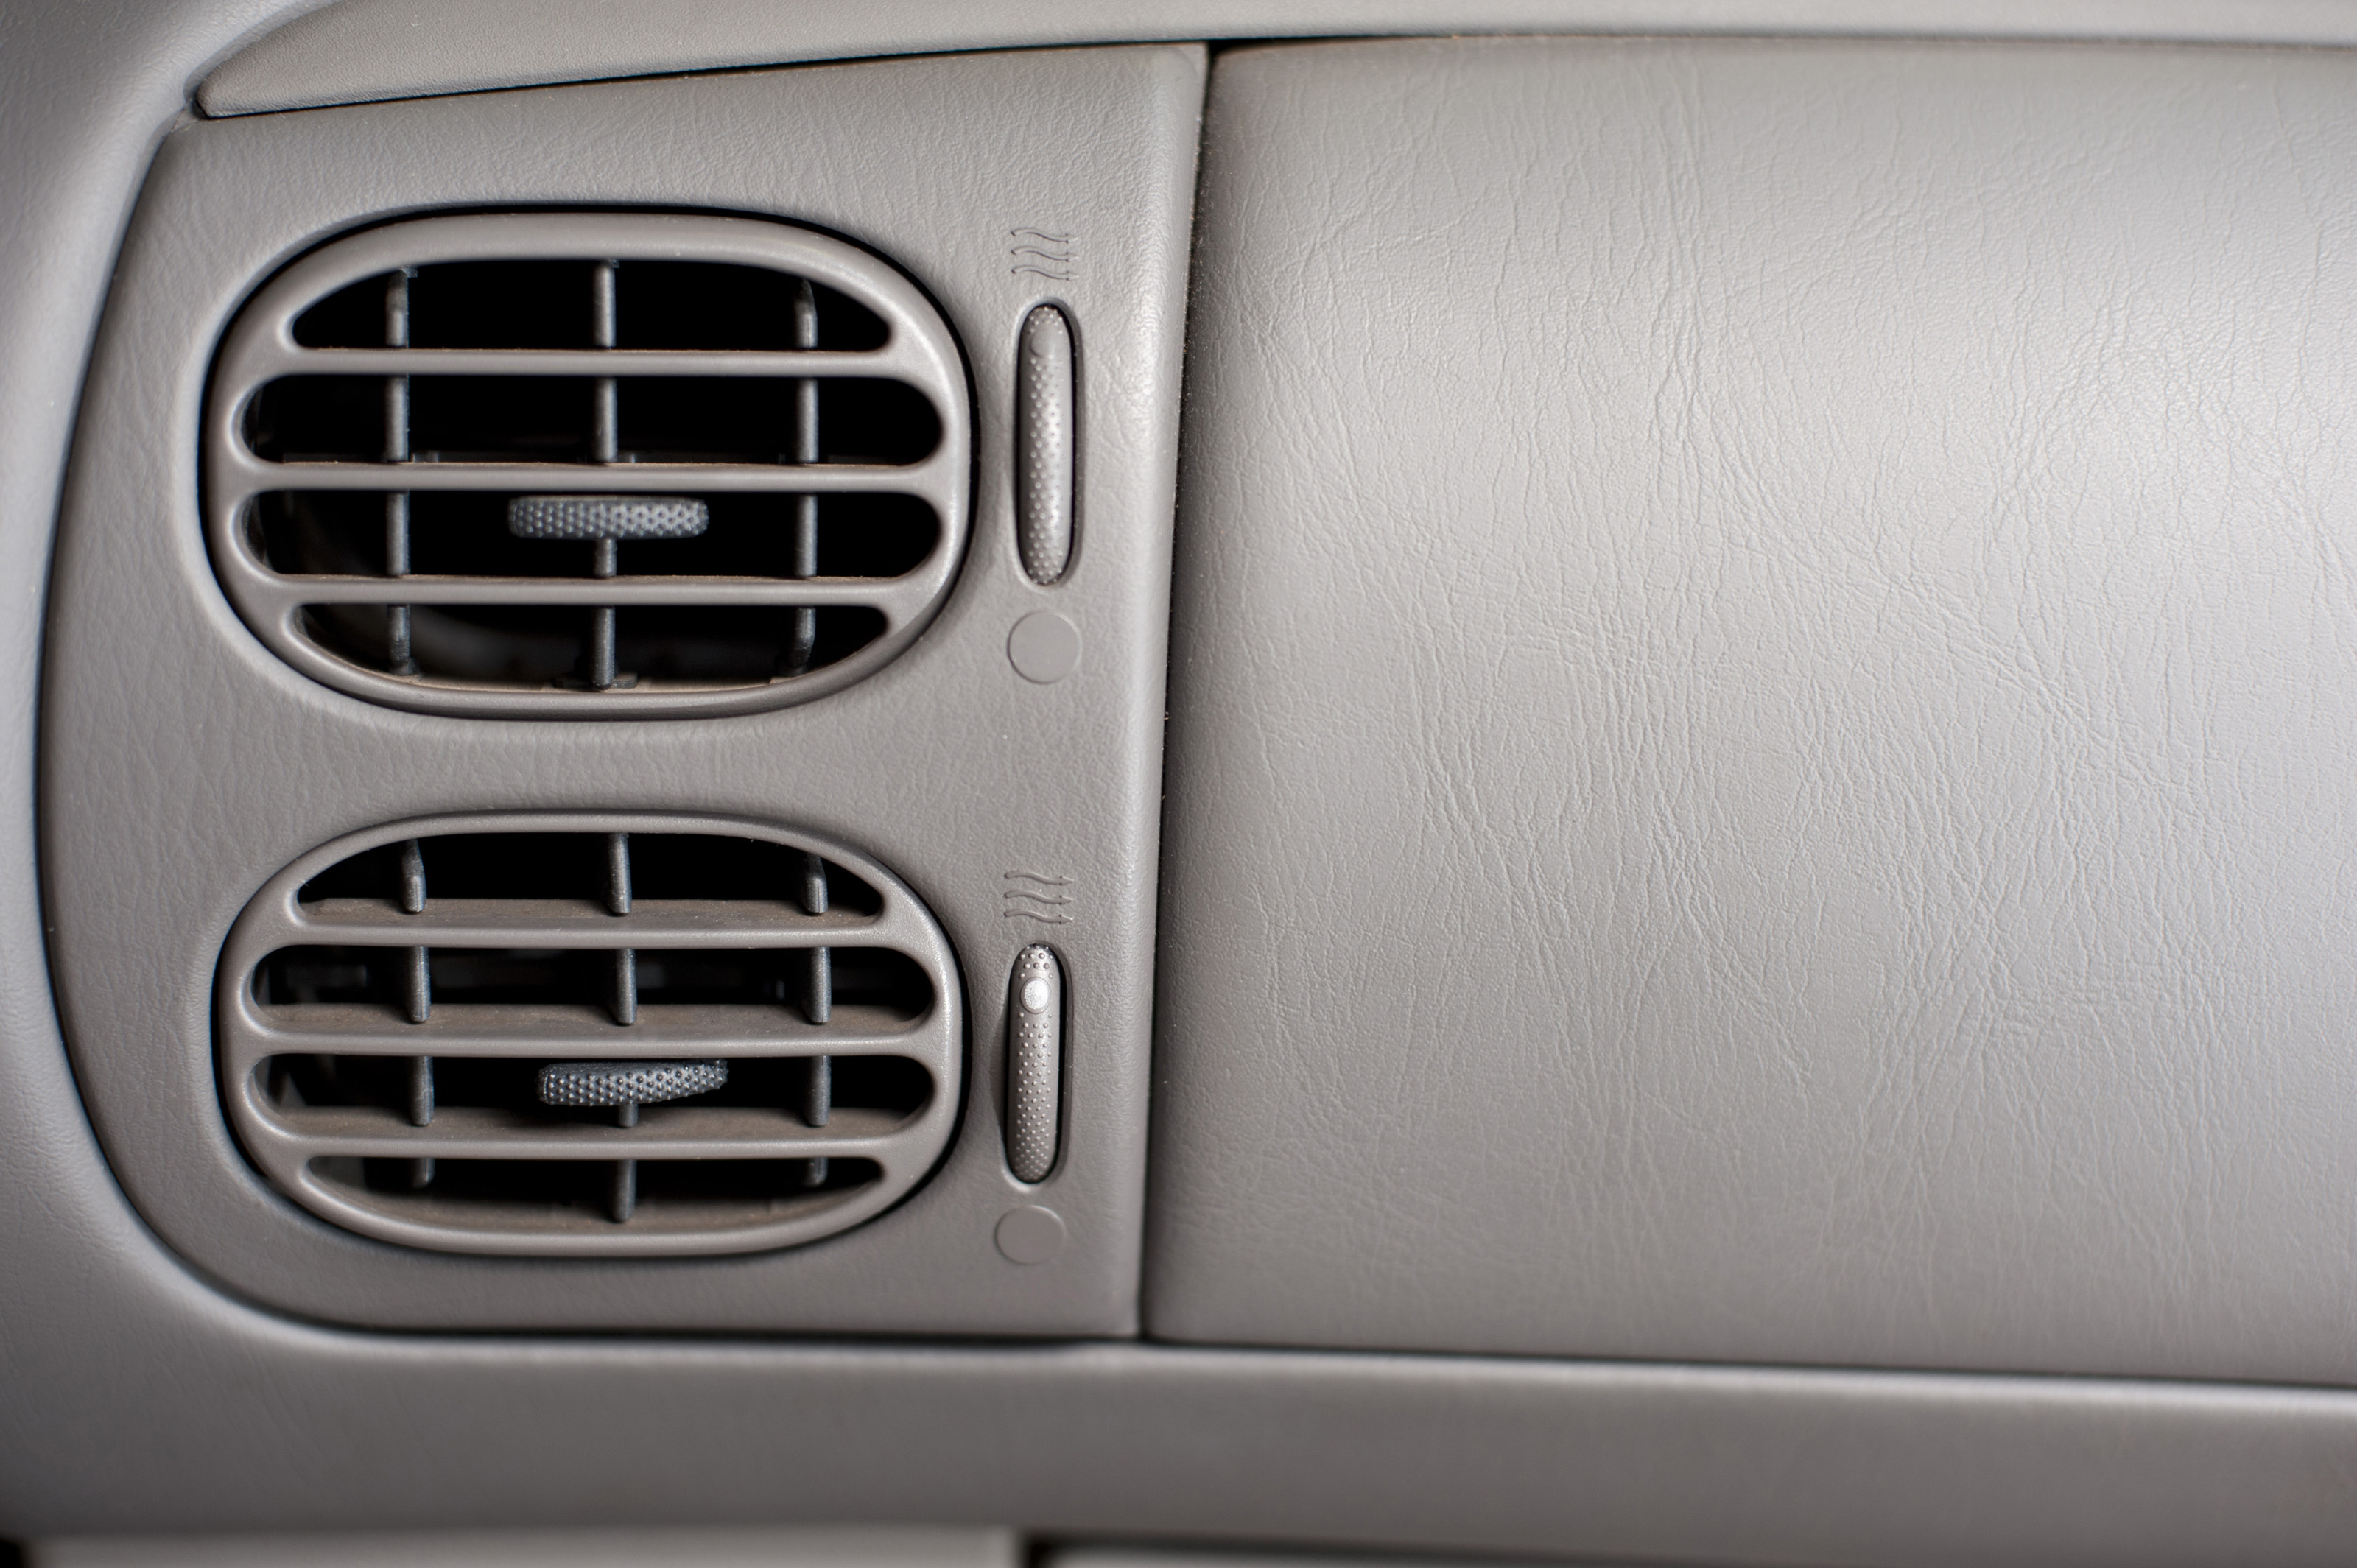 #4B5159 Free Stock Photo 11126 Close Up Air Conditioner Vents Of A  Highly Rated 4589 Hvac Wall Vents wallpapers with 3200x2129 px on helpvideos.info - Air Conditioners, Air Coolers and more